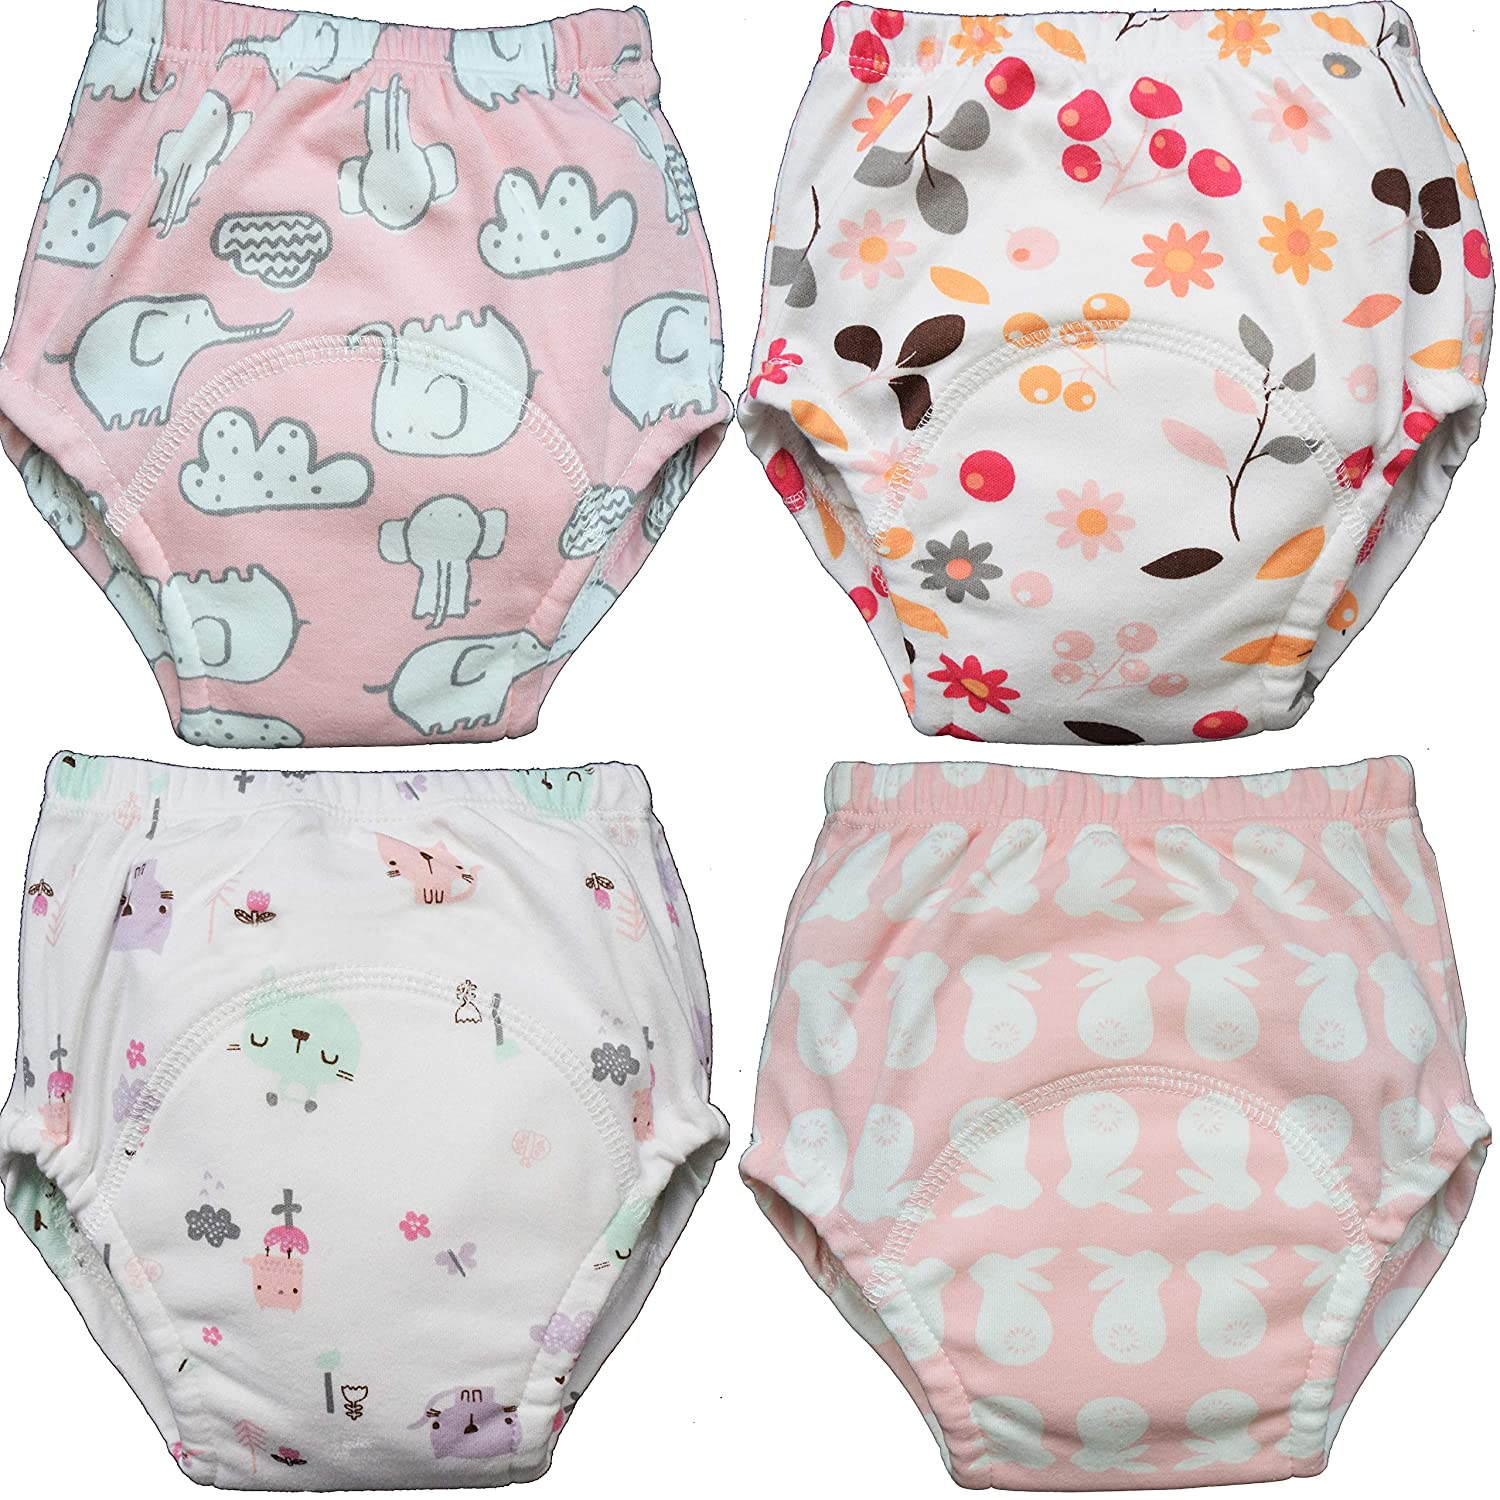 Washable Pants 3 X Absorbent Medium Soft Cotton MOM /& BAB Potty Training Underwear for Toddlers Free Wet Bag Train Faster